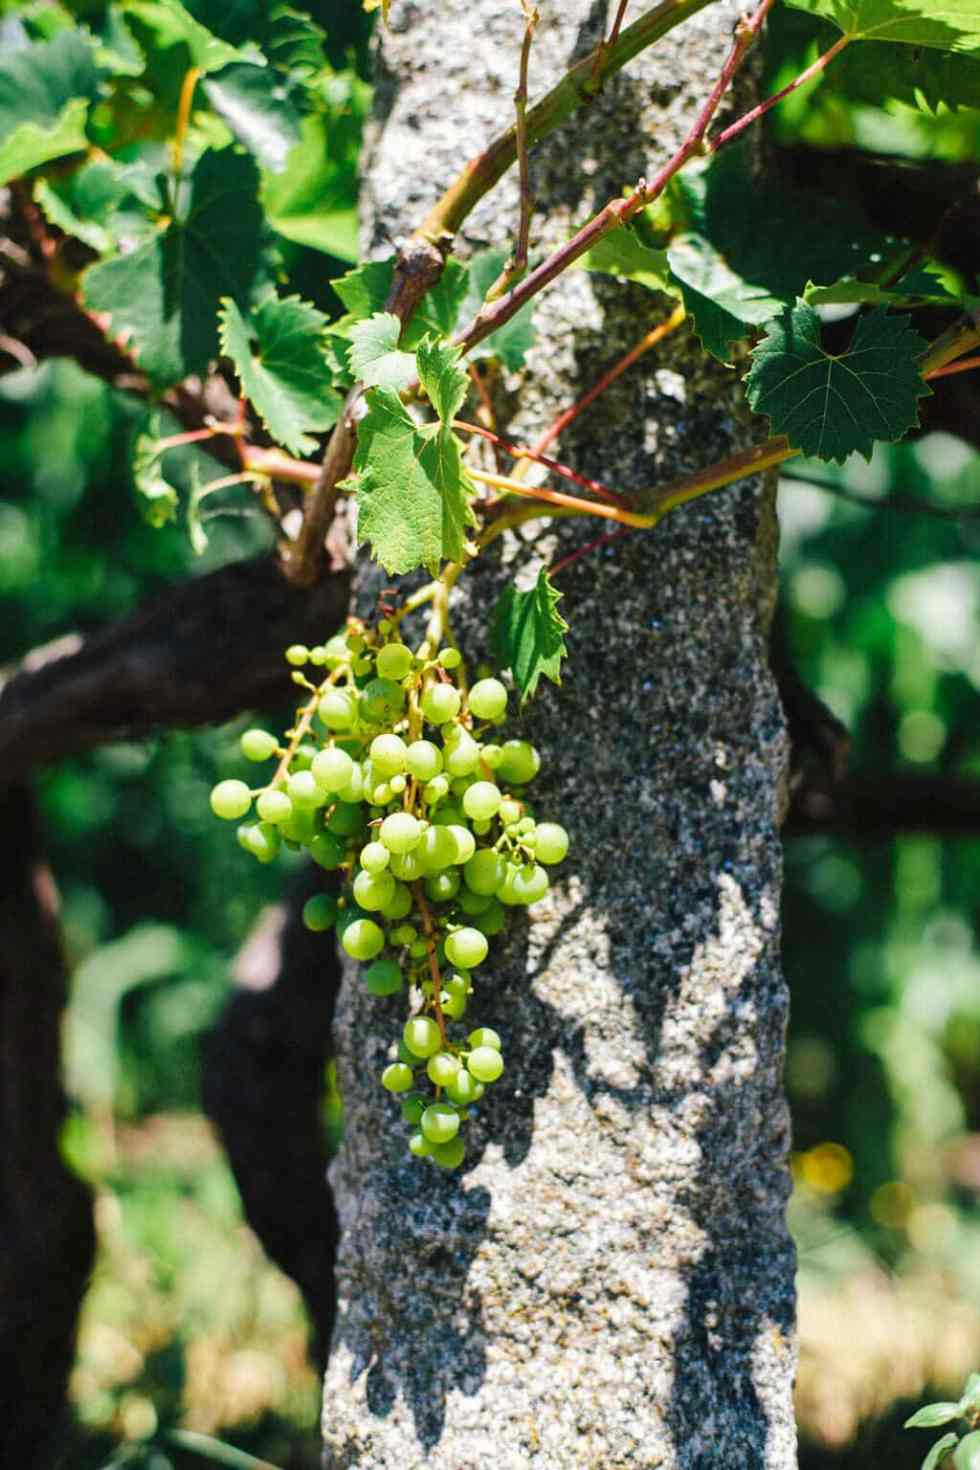 a bunch of green grapes hanging on a vine in bright sunlight